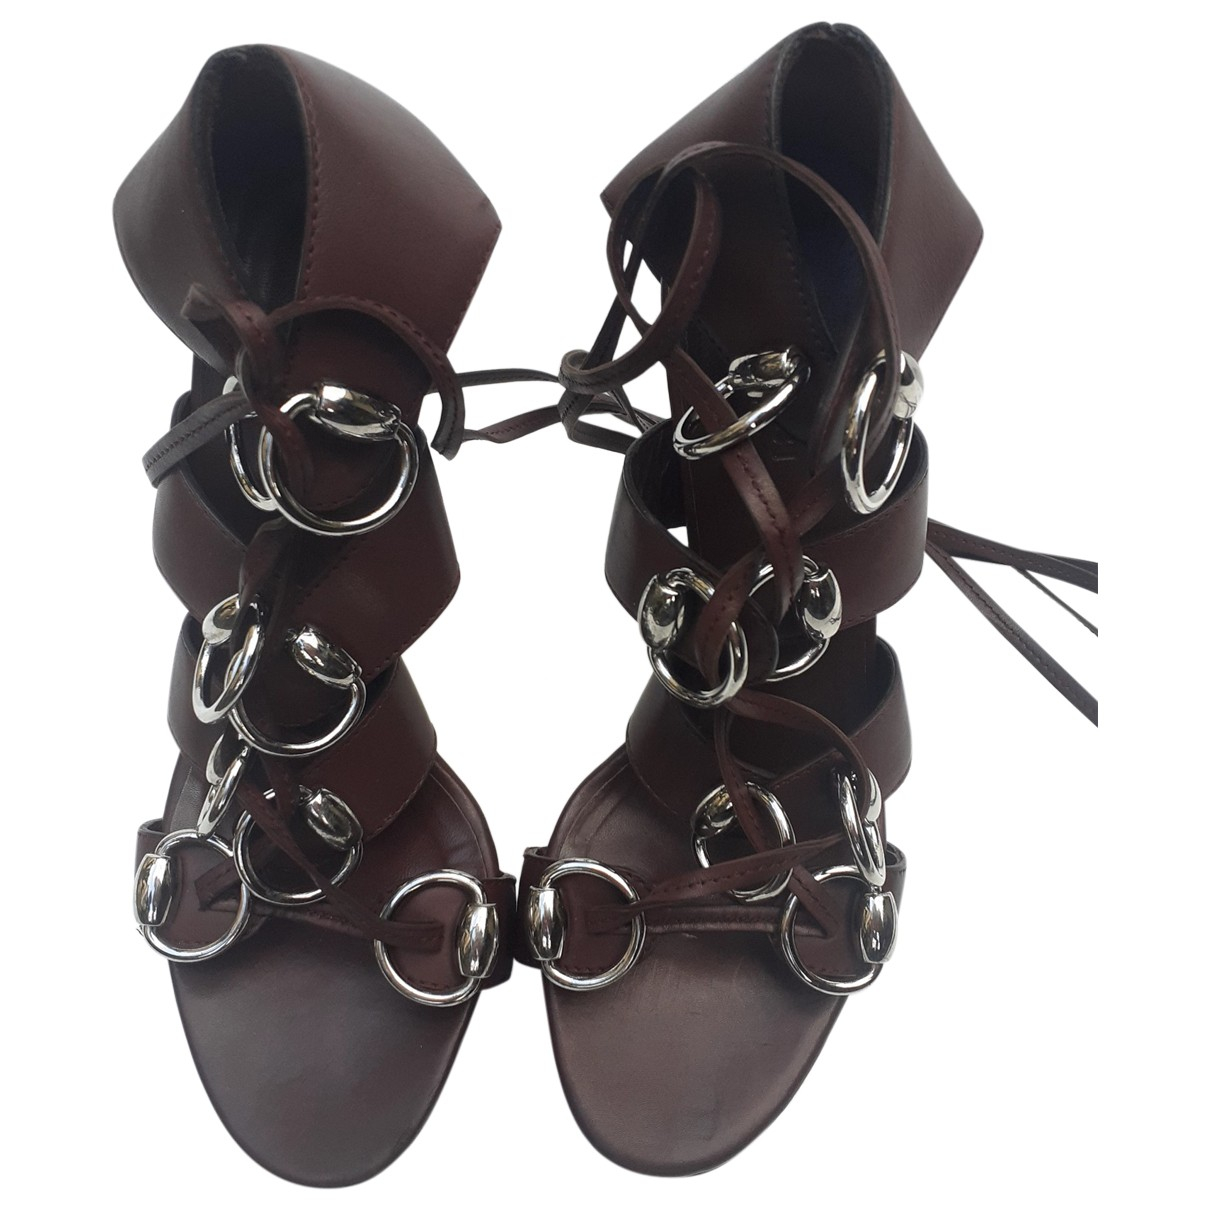 Gucci N Brown Leather Sandals for Women 37 IT